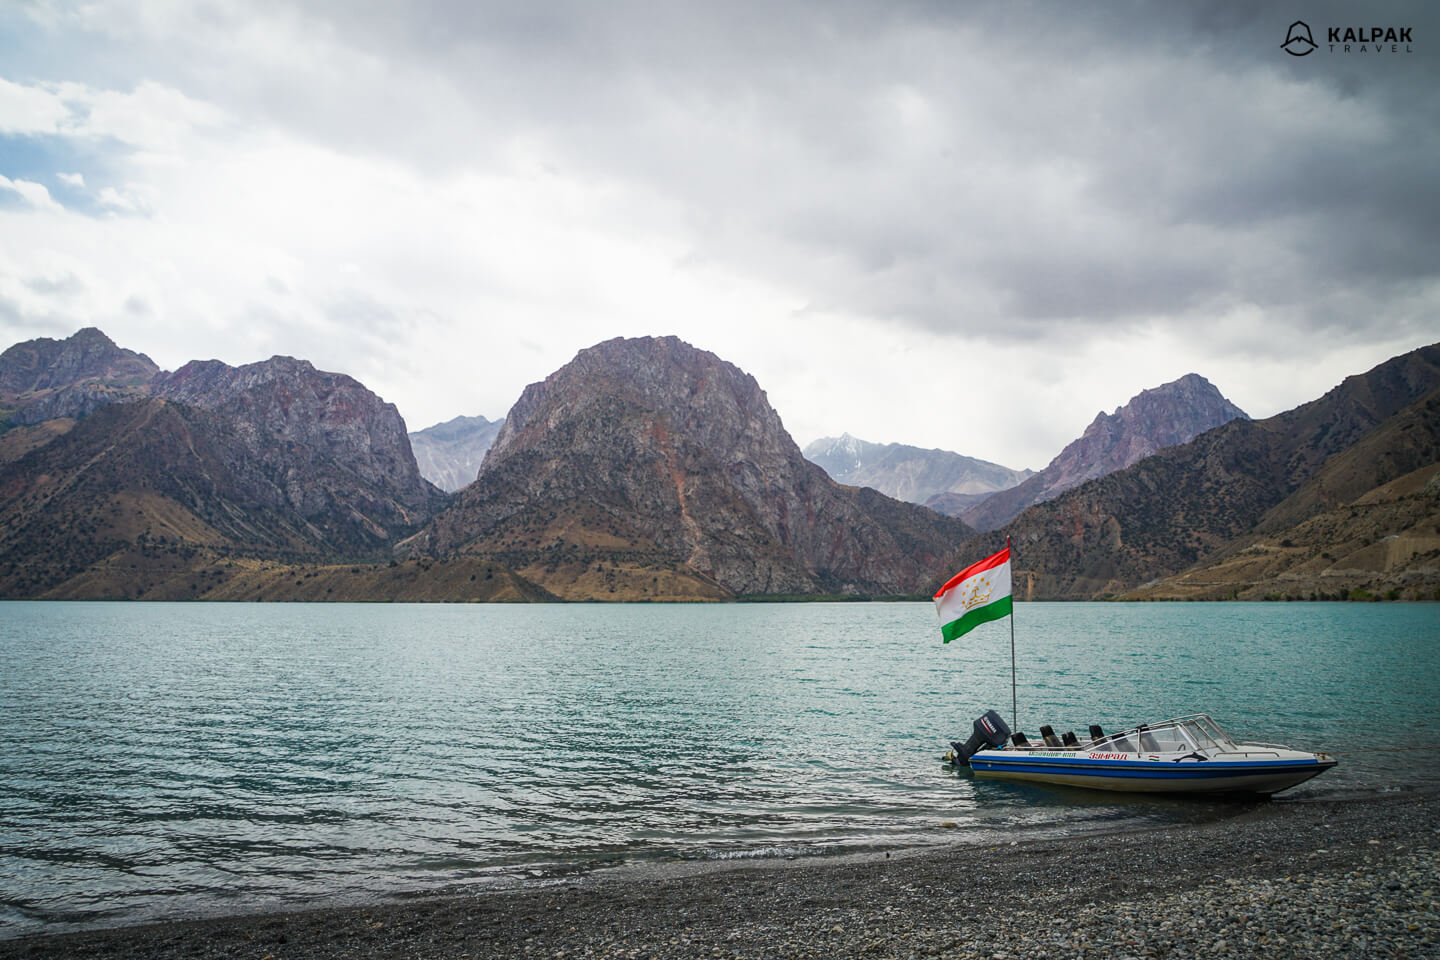 Iskanderkul Lake named after Alexander the Great